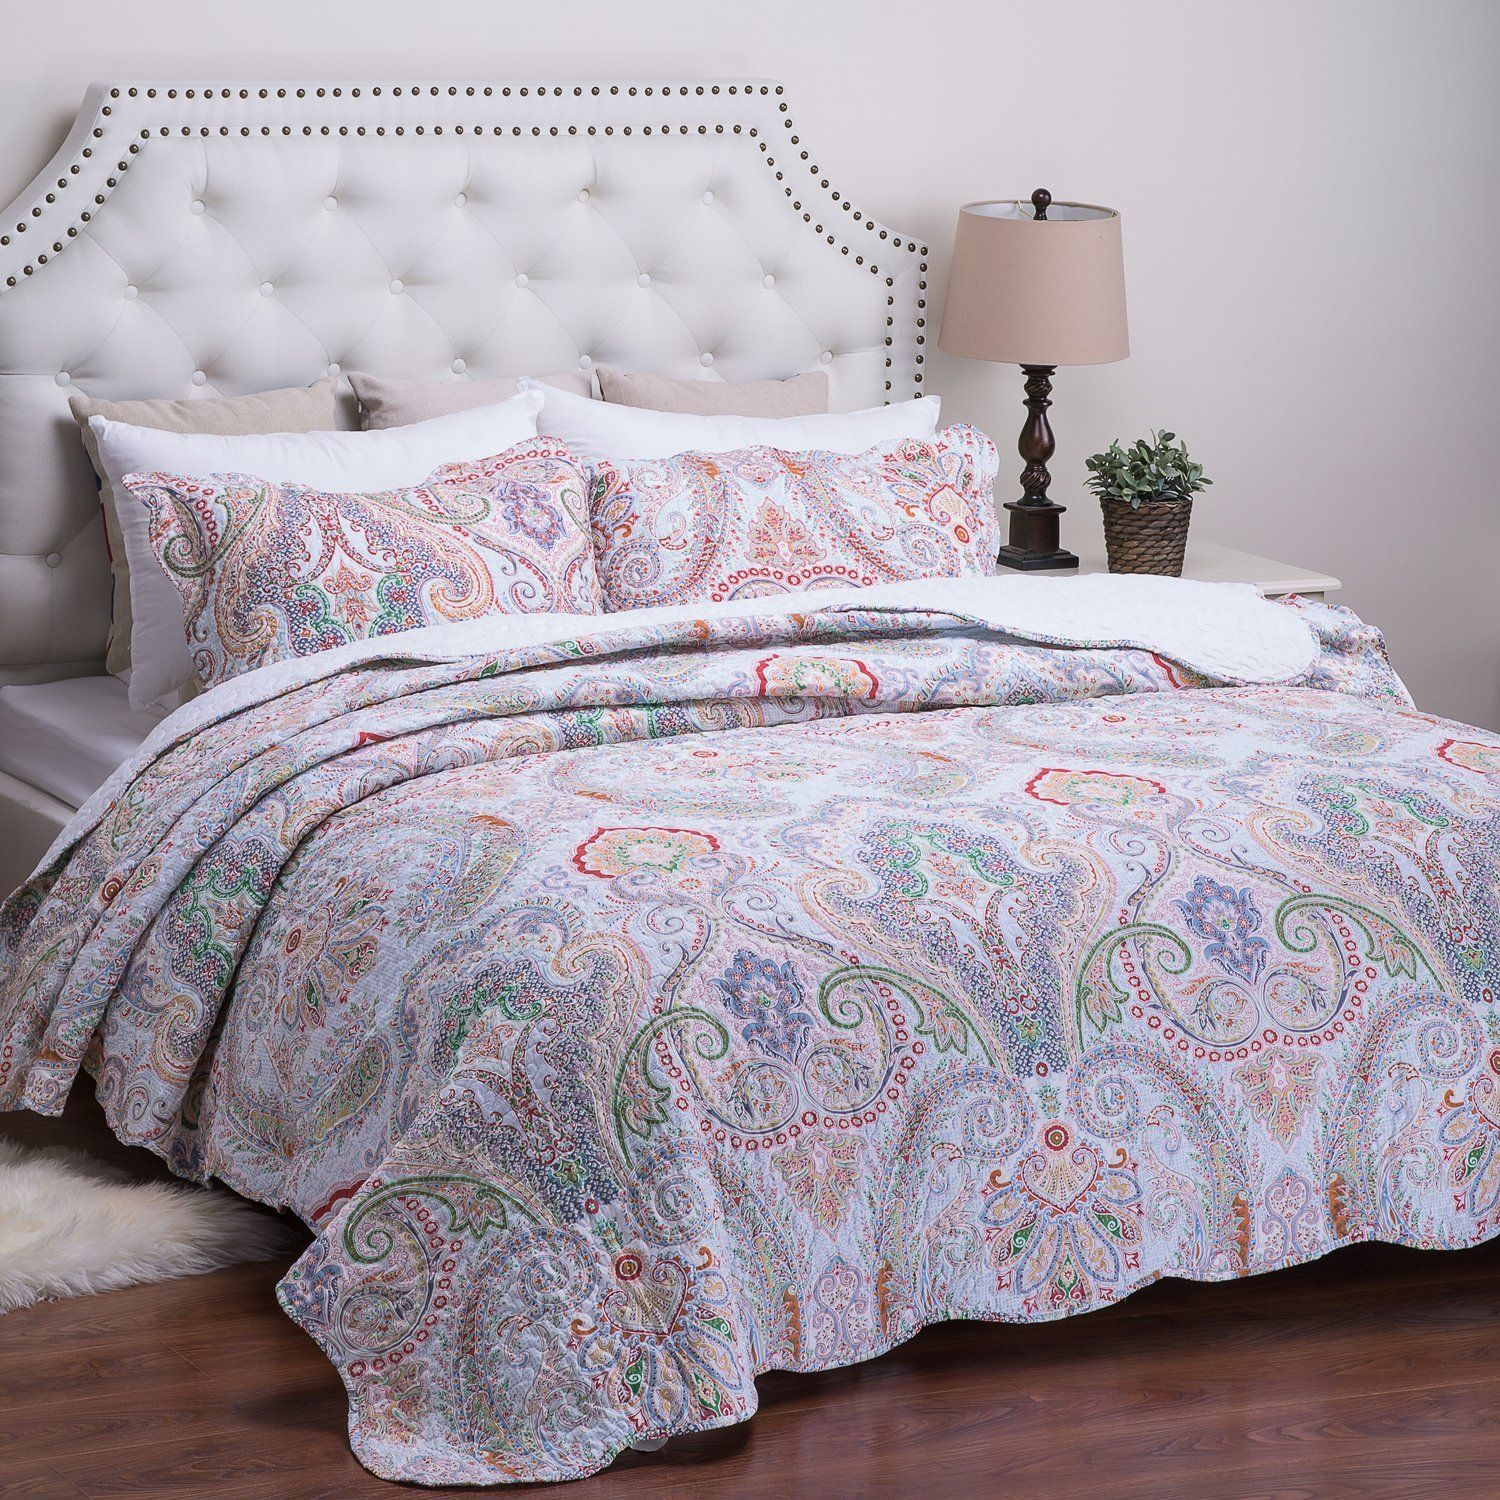 buy cheap twin museosdemolina quilt sets quilts coverlets info ale comforters king california and